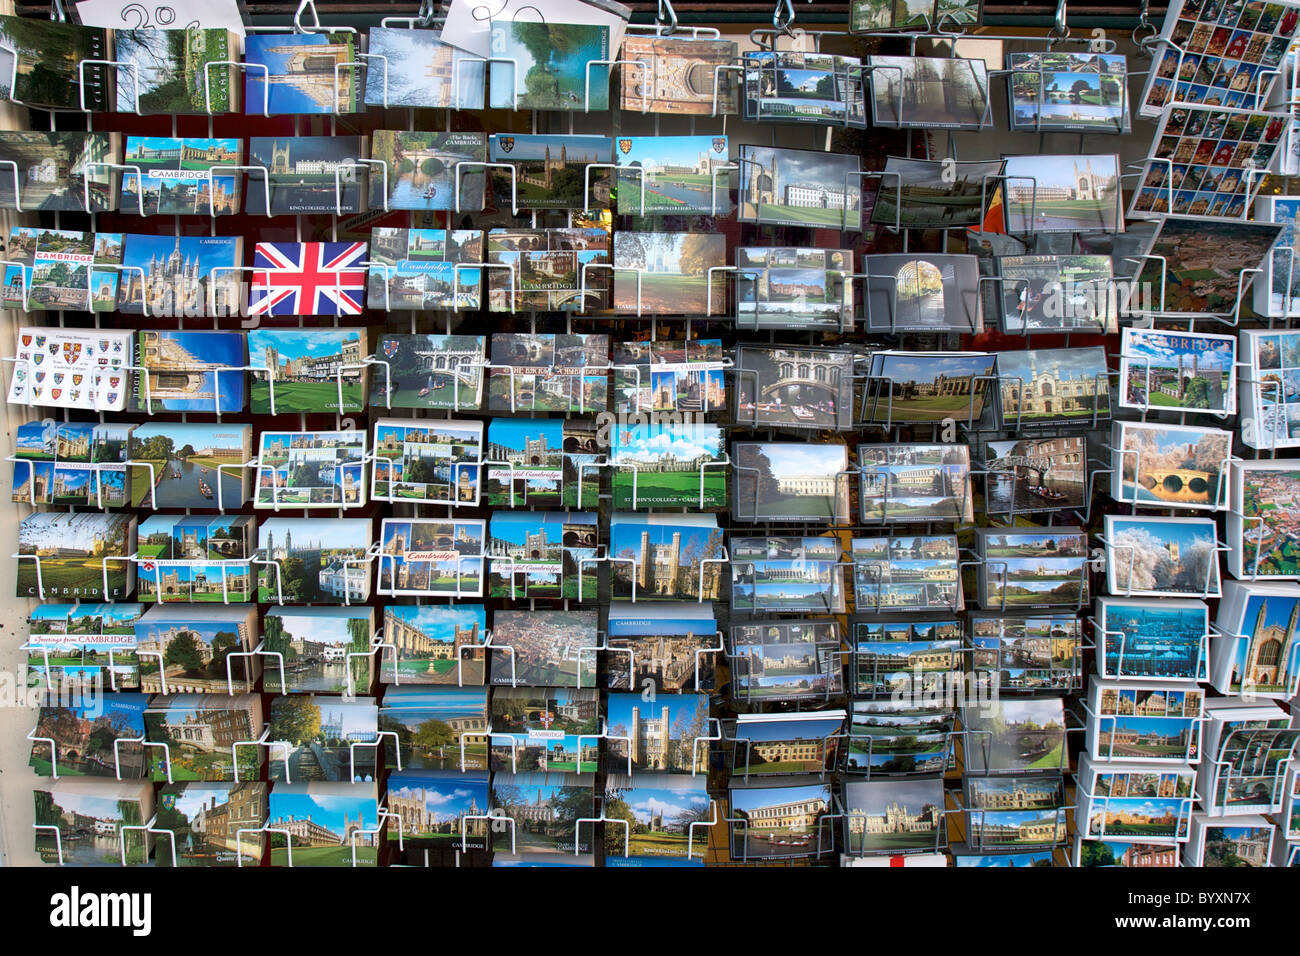 Postcards for sale in Cambridge - Stock Image